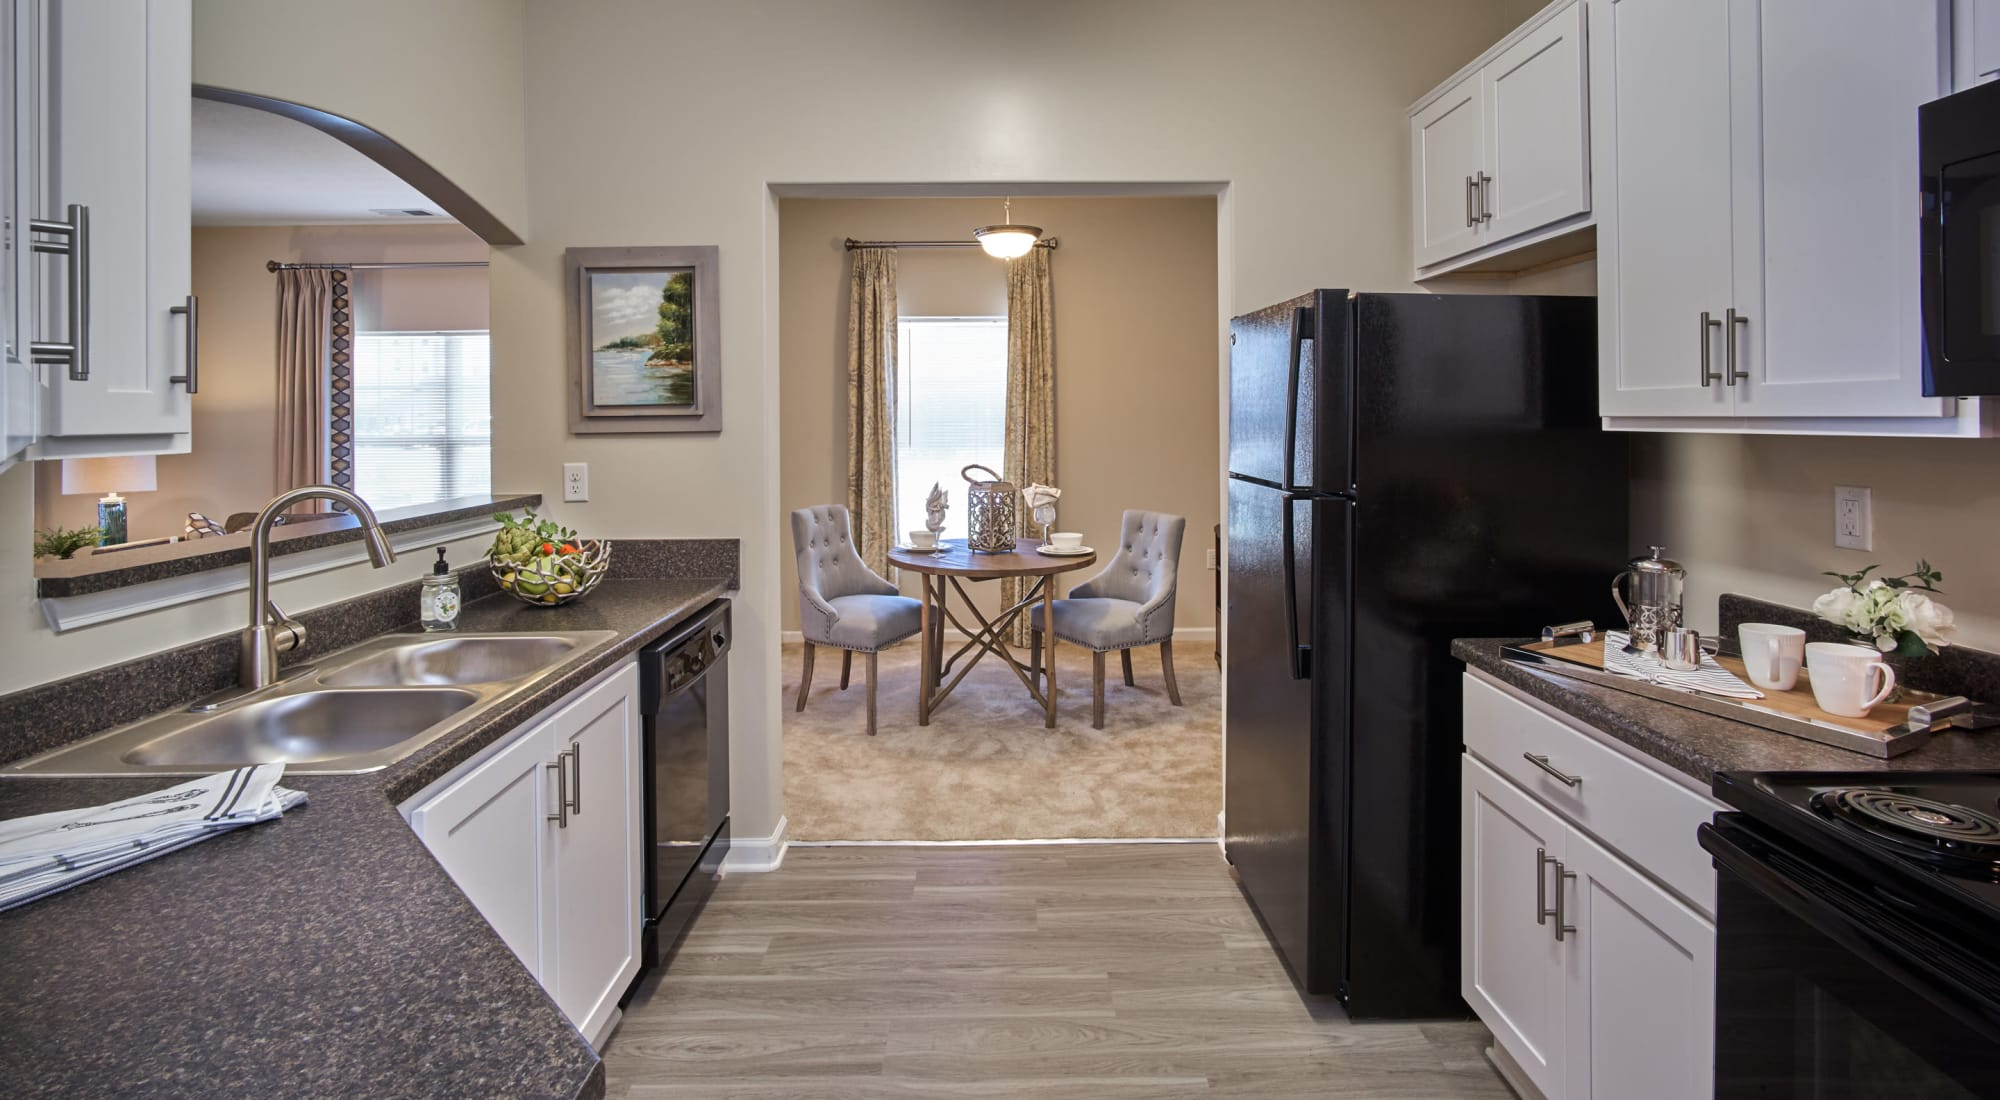 Large spacious kitchen with a pass-through window at Meridian Obici in Suffolk, Virginia